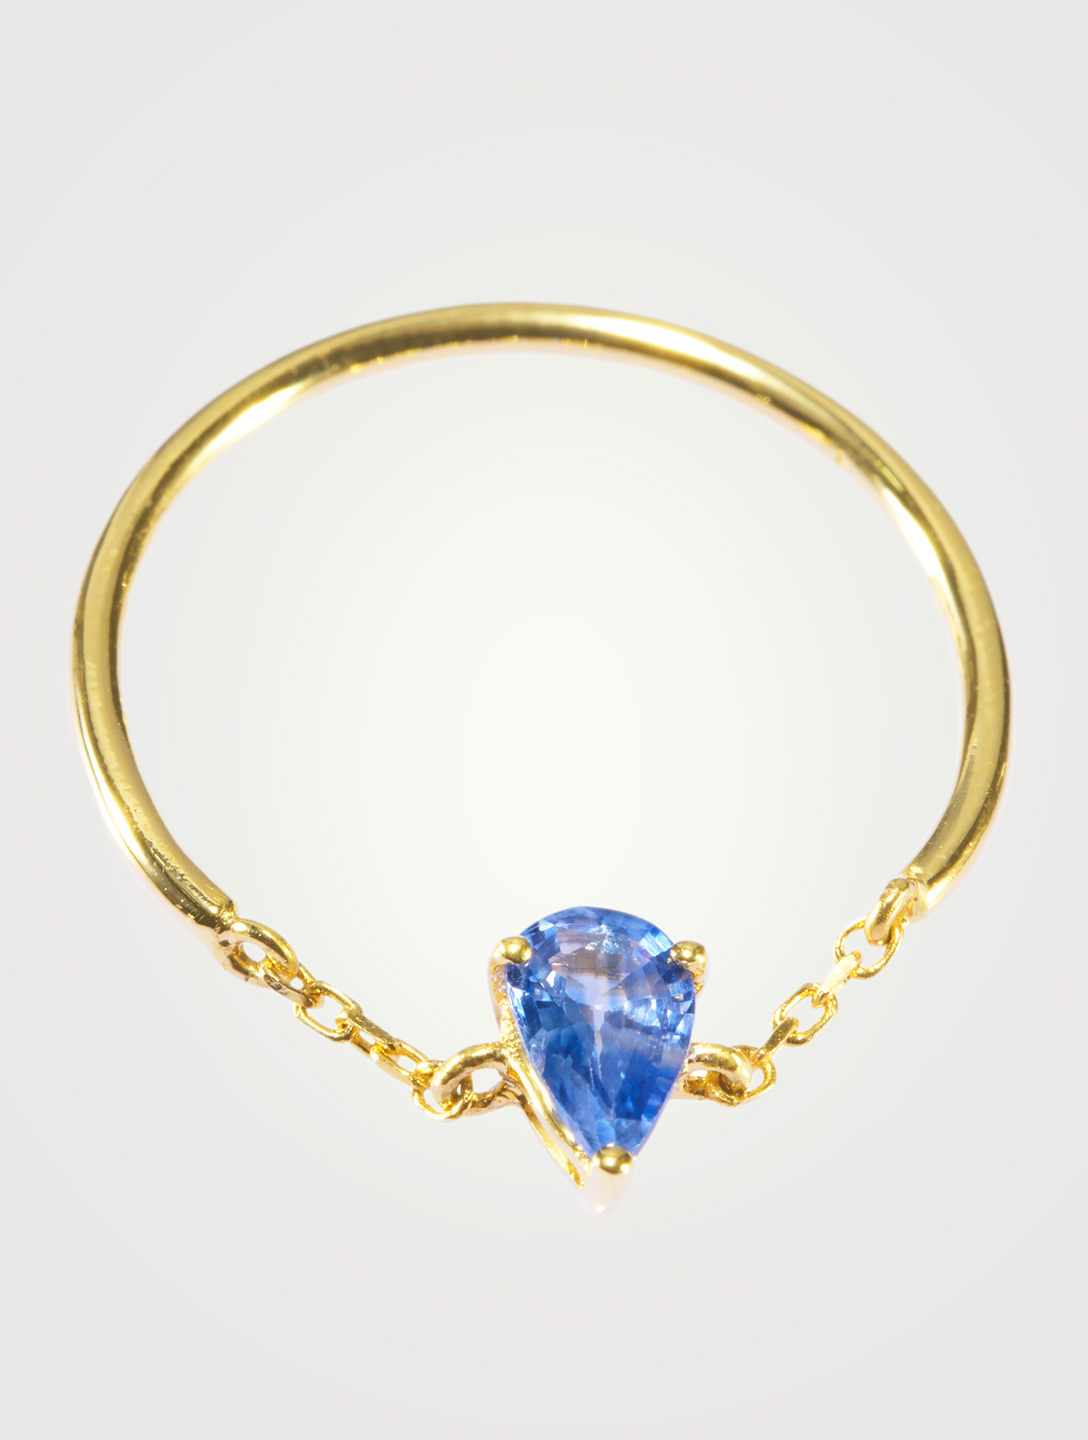 YI COLLECTION 18K Gold Half Chain Ring With Teardrop Sapphire Women's Metallic